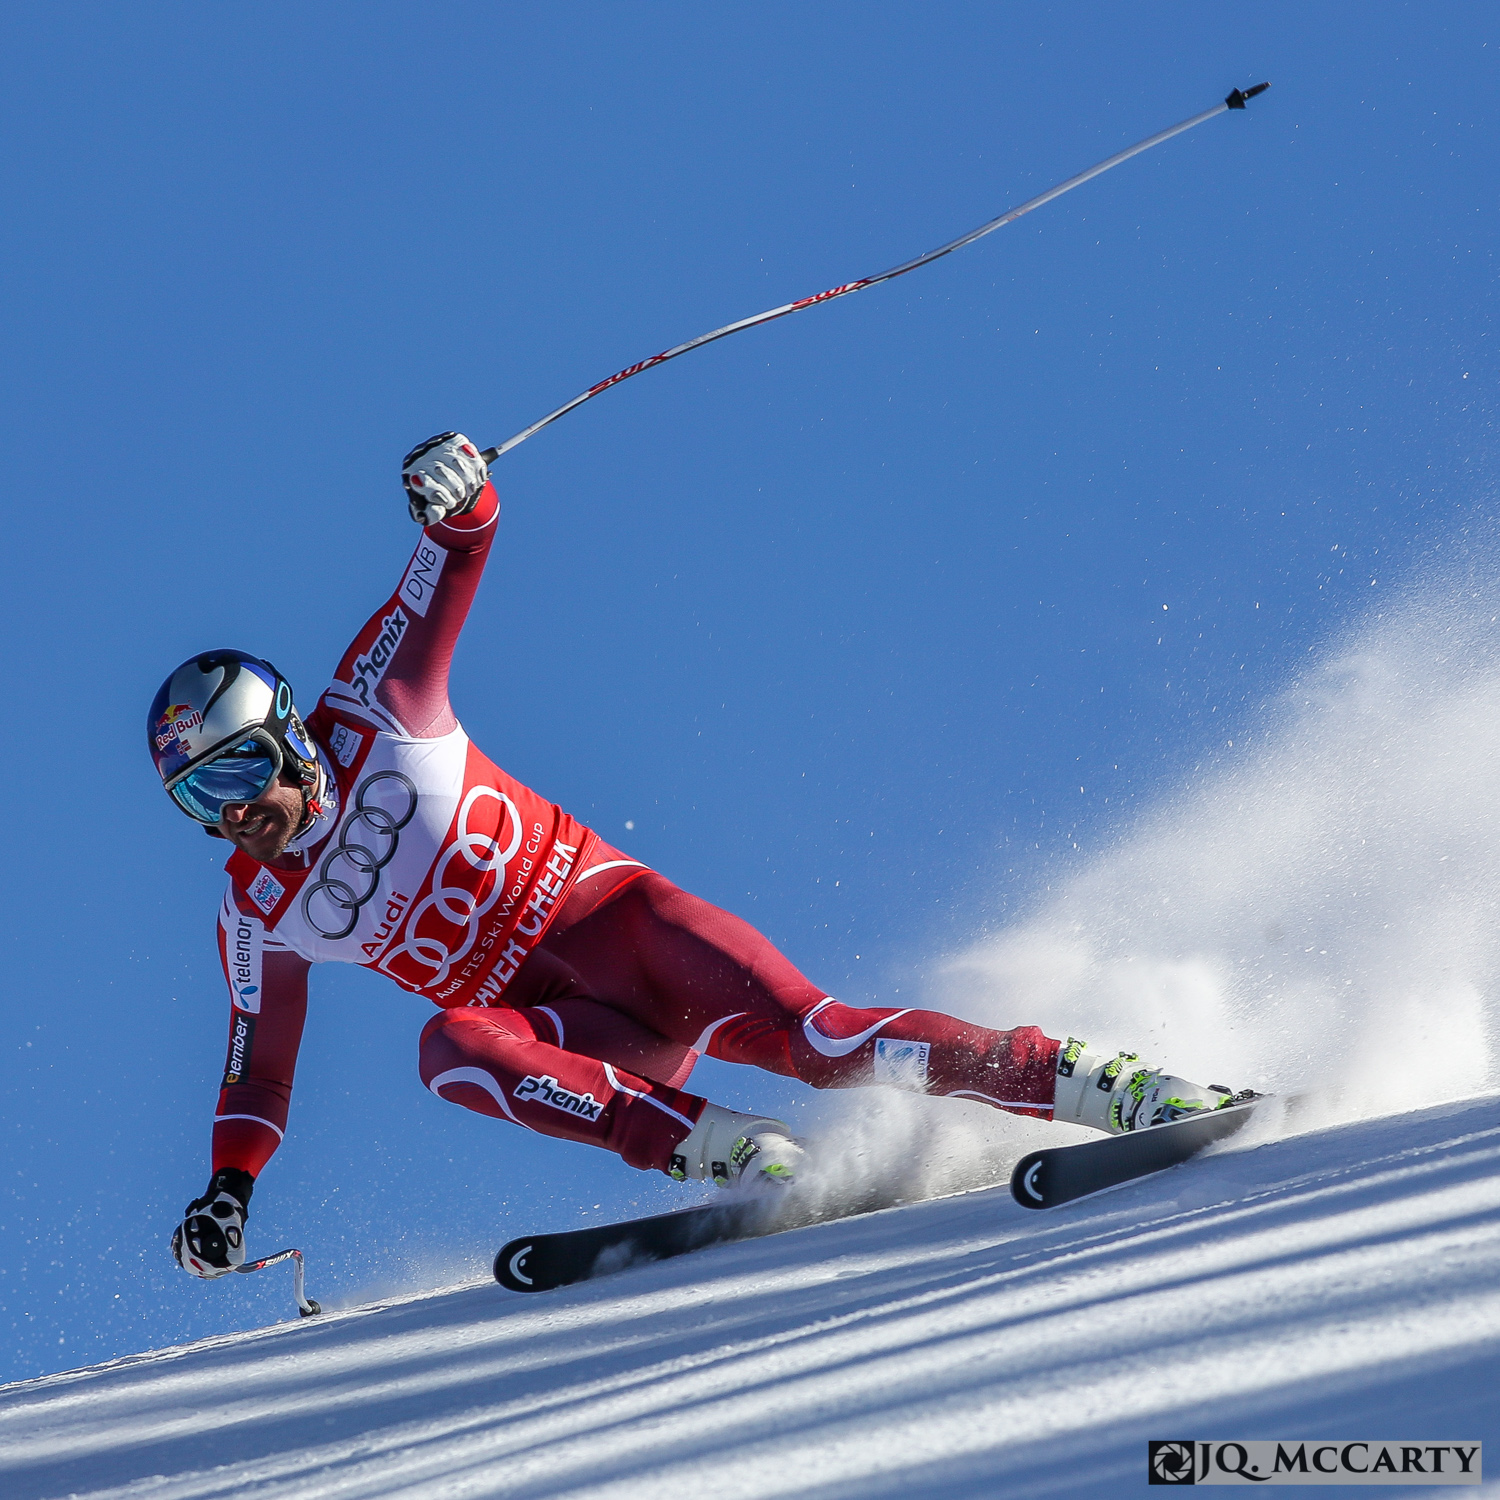 Norway's Aksel Lund Svindel lets the skis rip during his run on the Birds of Prey World Cup downhill race Friday in Beaver Creek. Svindel won his second consecutive World Cup downhill event with a time of 1 minute, 42.34 seconds.